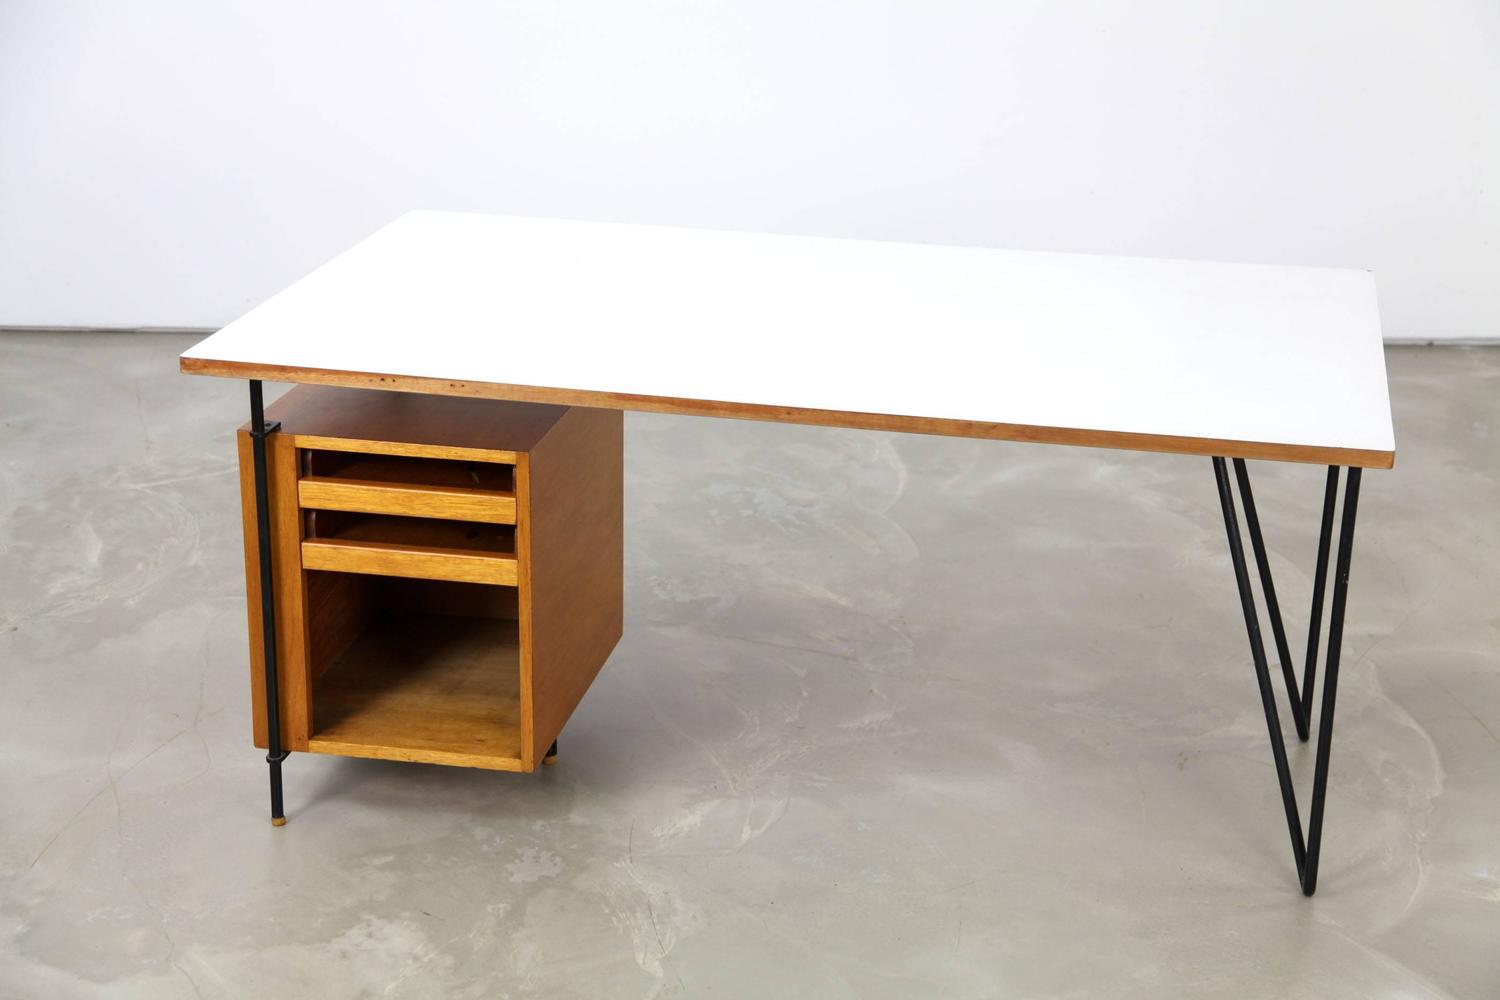 1950s architect 39 s desk made in germany at 1stdibs